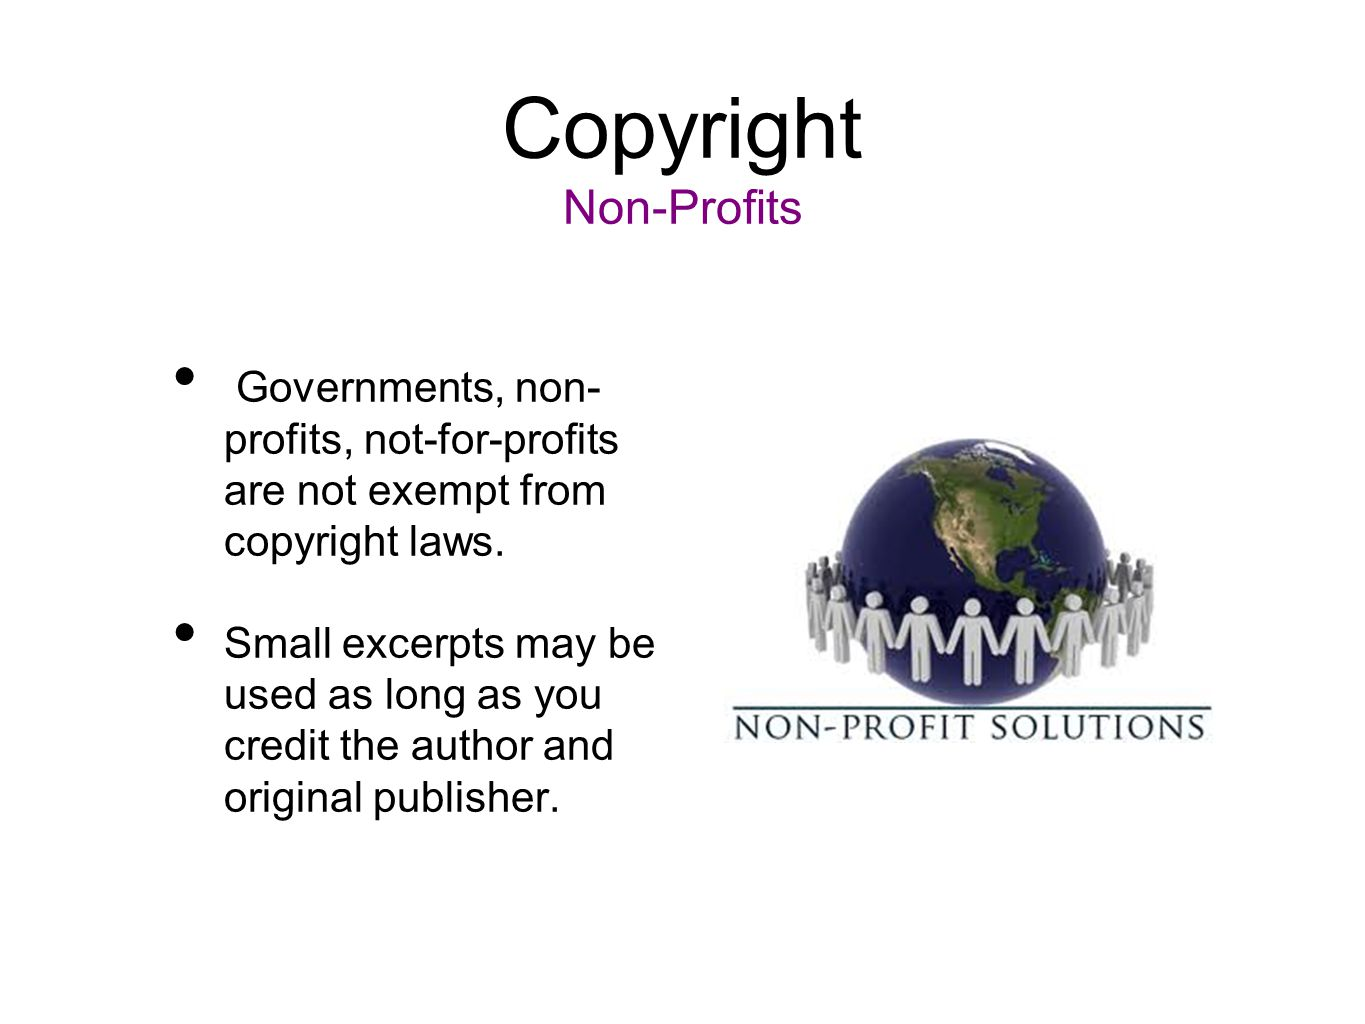 Copyright Non-Profits Governments, non- profits, not-for-profits are not exempt from copyright laws. Small excerpts may be used as long as you credit